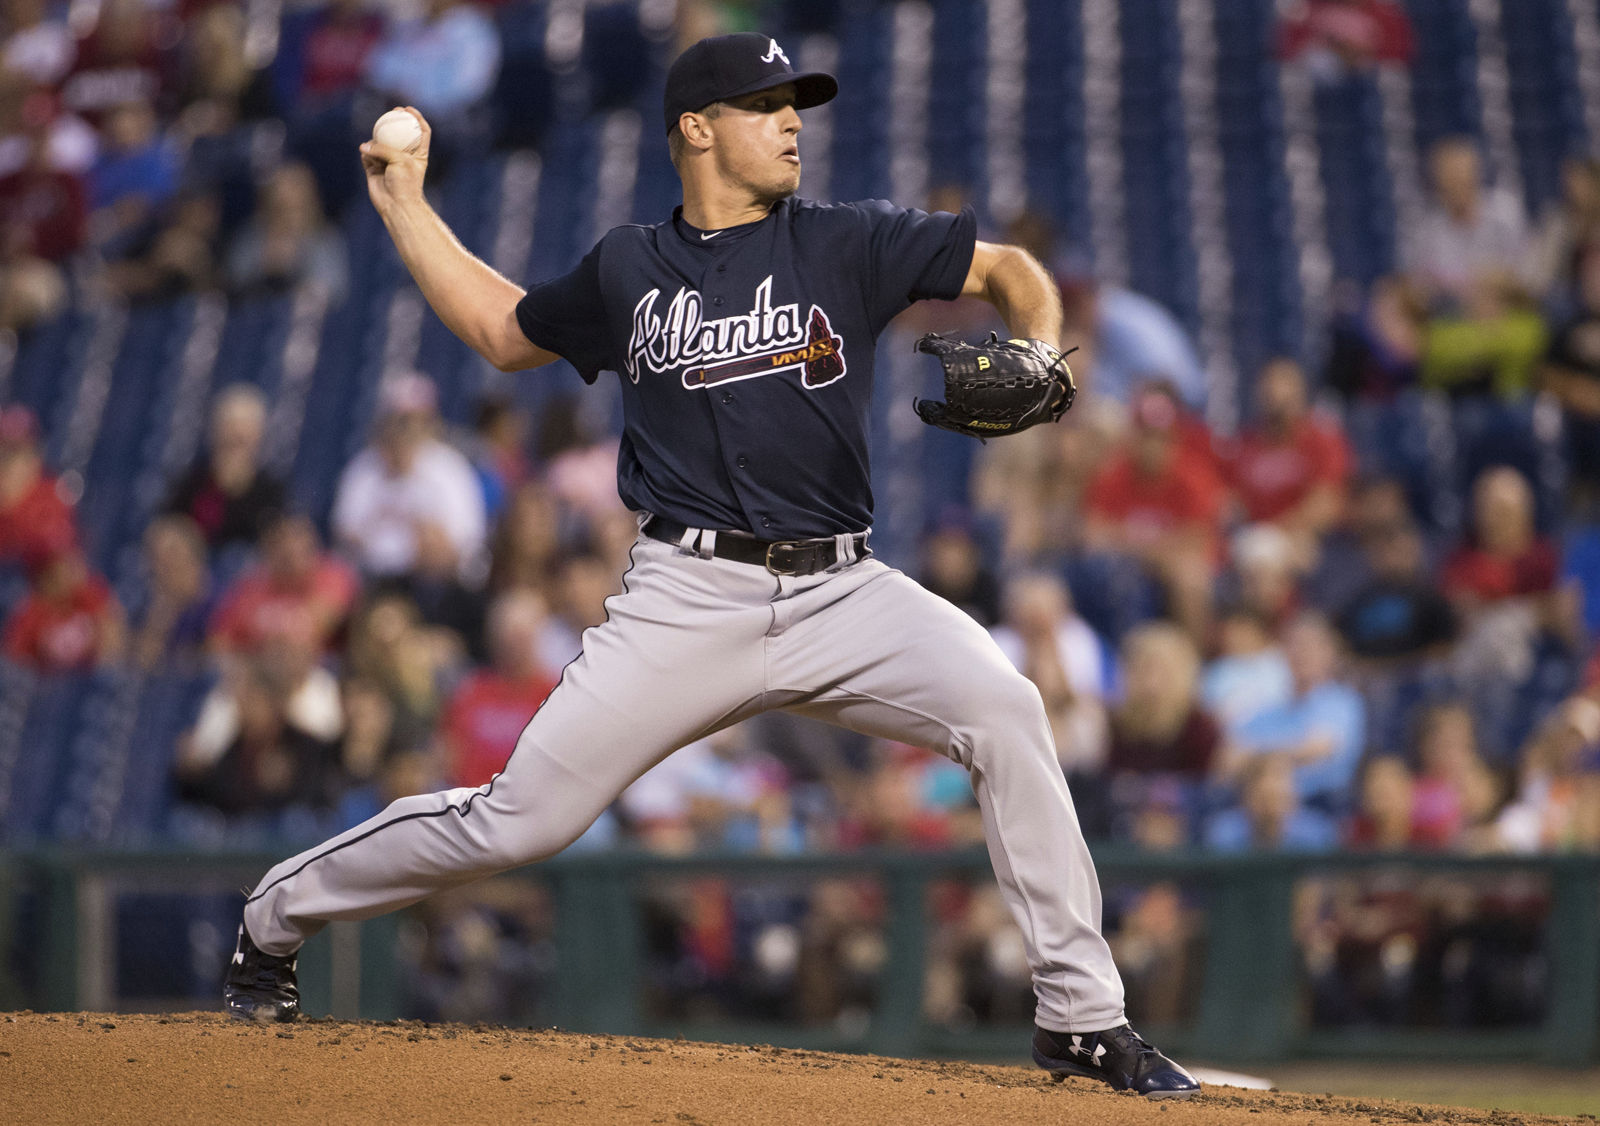 The Atlanta Braves have also come under criticism for their use of Native American imagery in their logos and uniform.   File. Atlanta Braves starting pitcher Lucas Sims throws a pitch during the second inning of a baseball game against the Philadelphia Phillies, Monday, Aug. 28, 2017, in Philadelphia. (AP Photo/Chris Szagola)